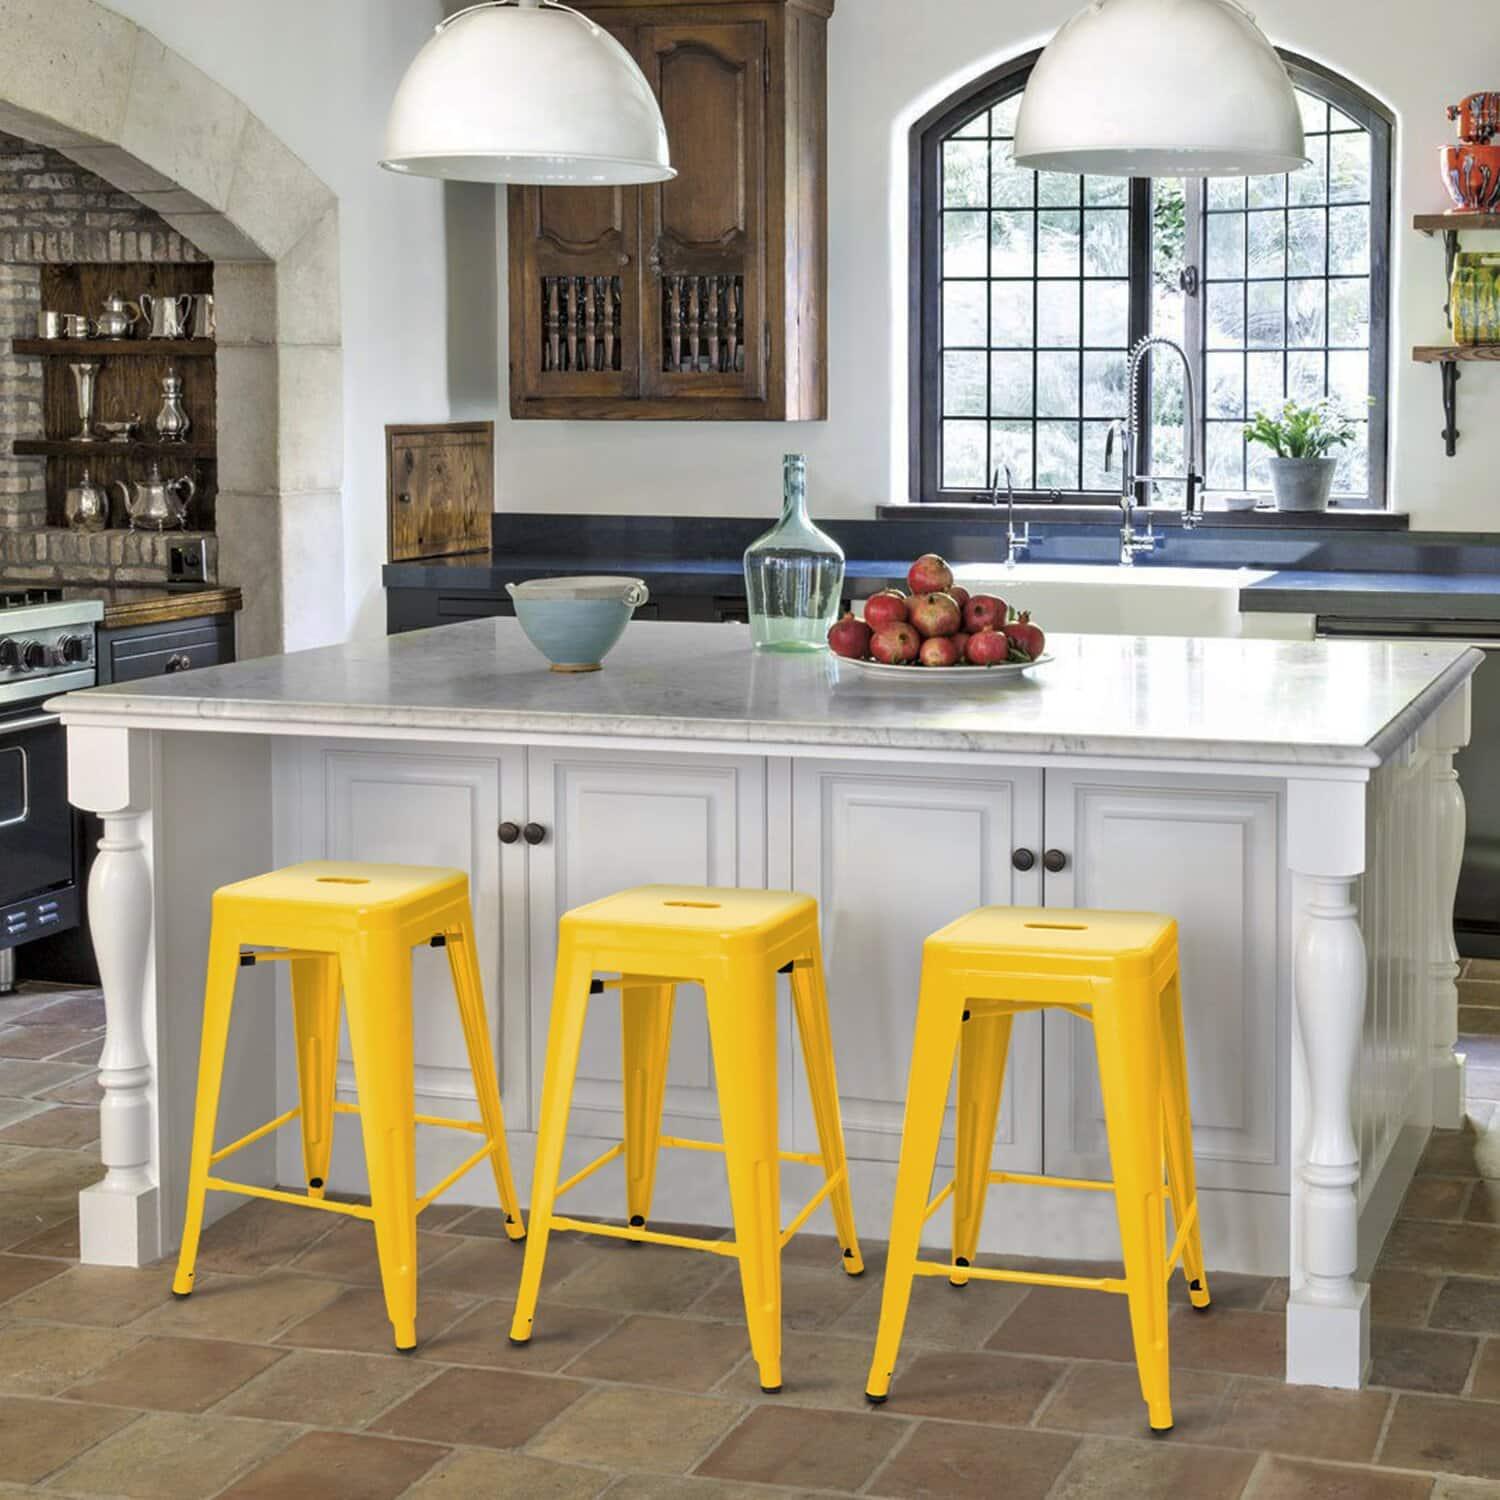 Add some Colour to your Space with these Yellow Kitchen Island Bar Stools